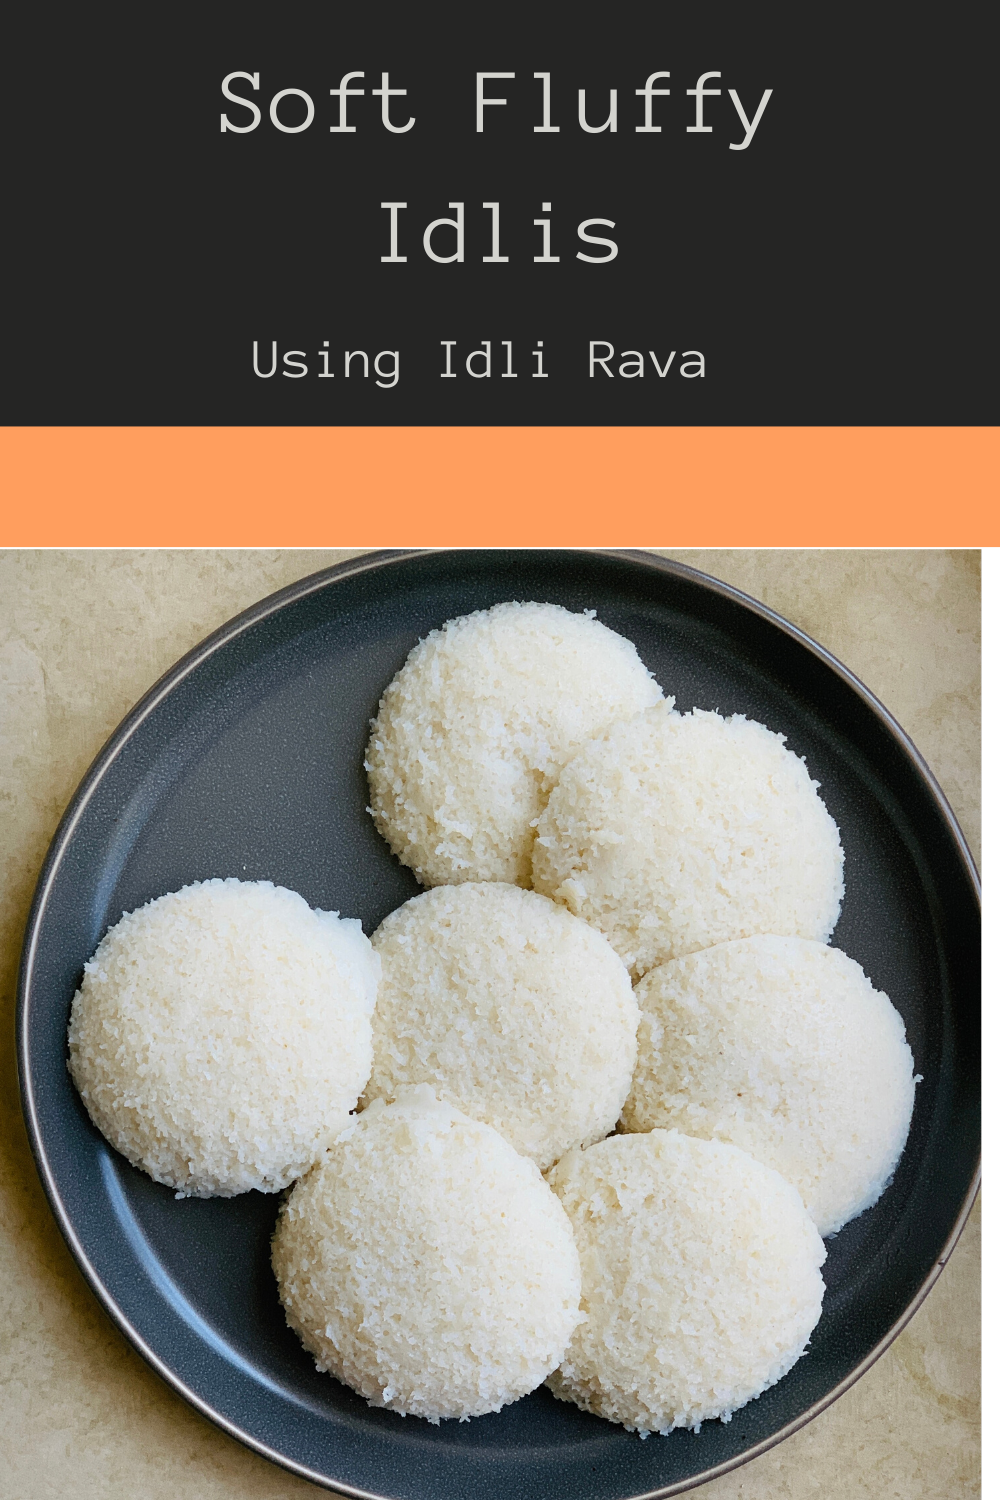 LEARN HOW TO MAKE IDLIS